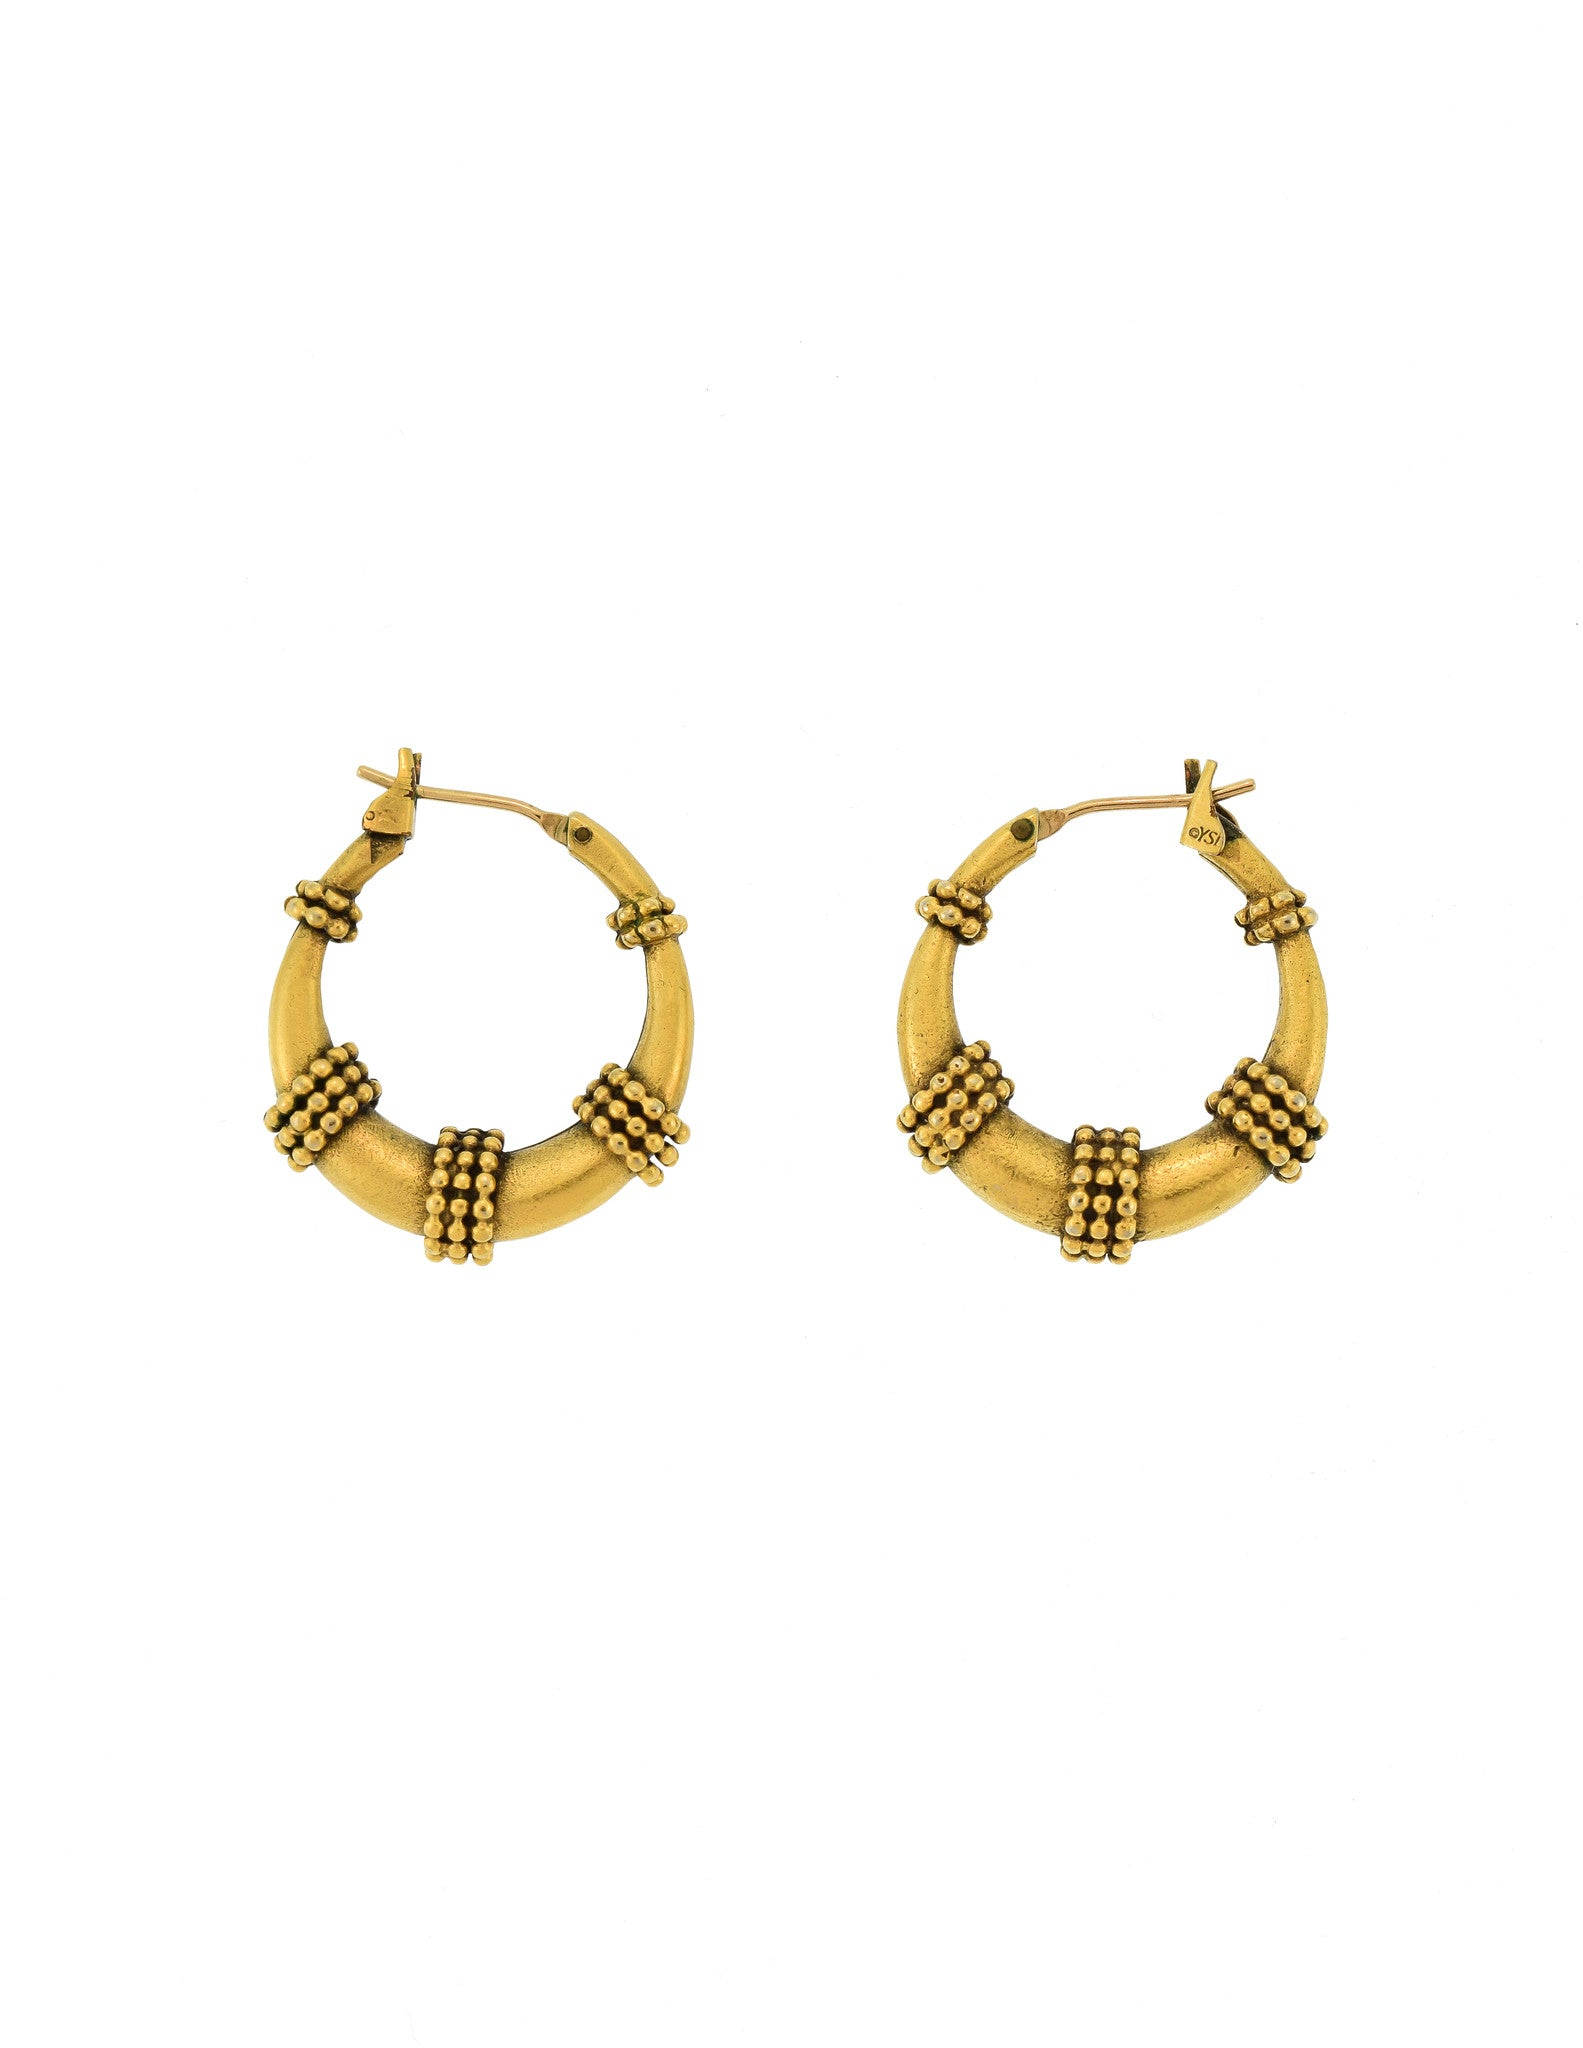 Yves Saint Laurent Vintage Brass Hoop Earrings - Amarcord Vintage Fashion  - 1